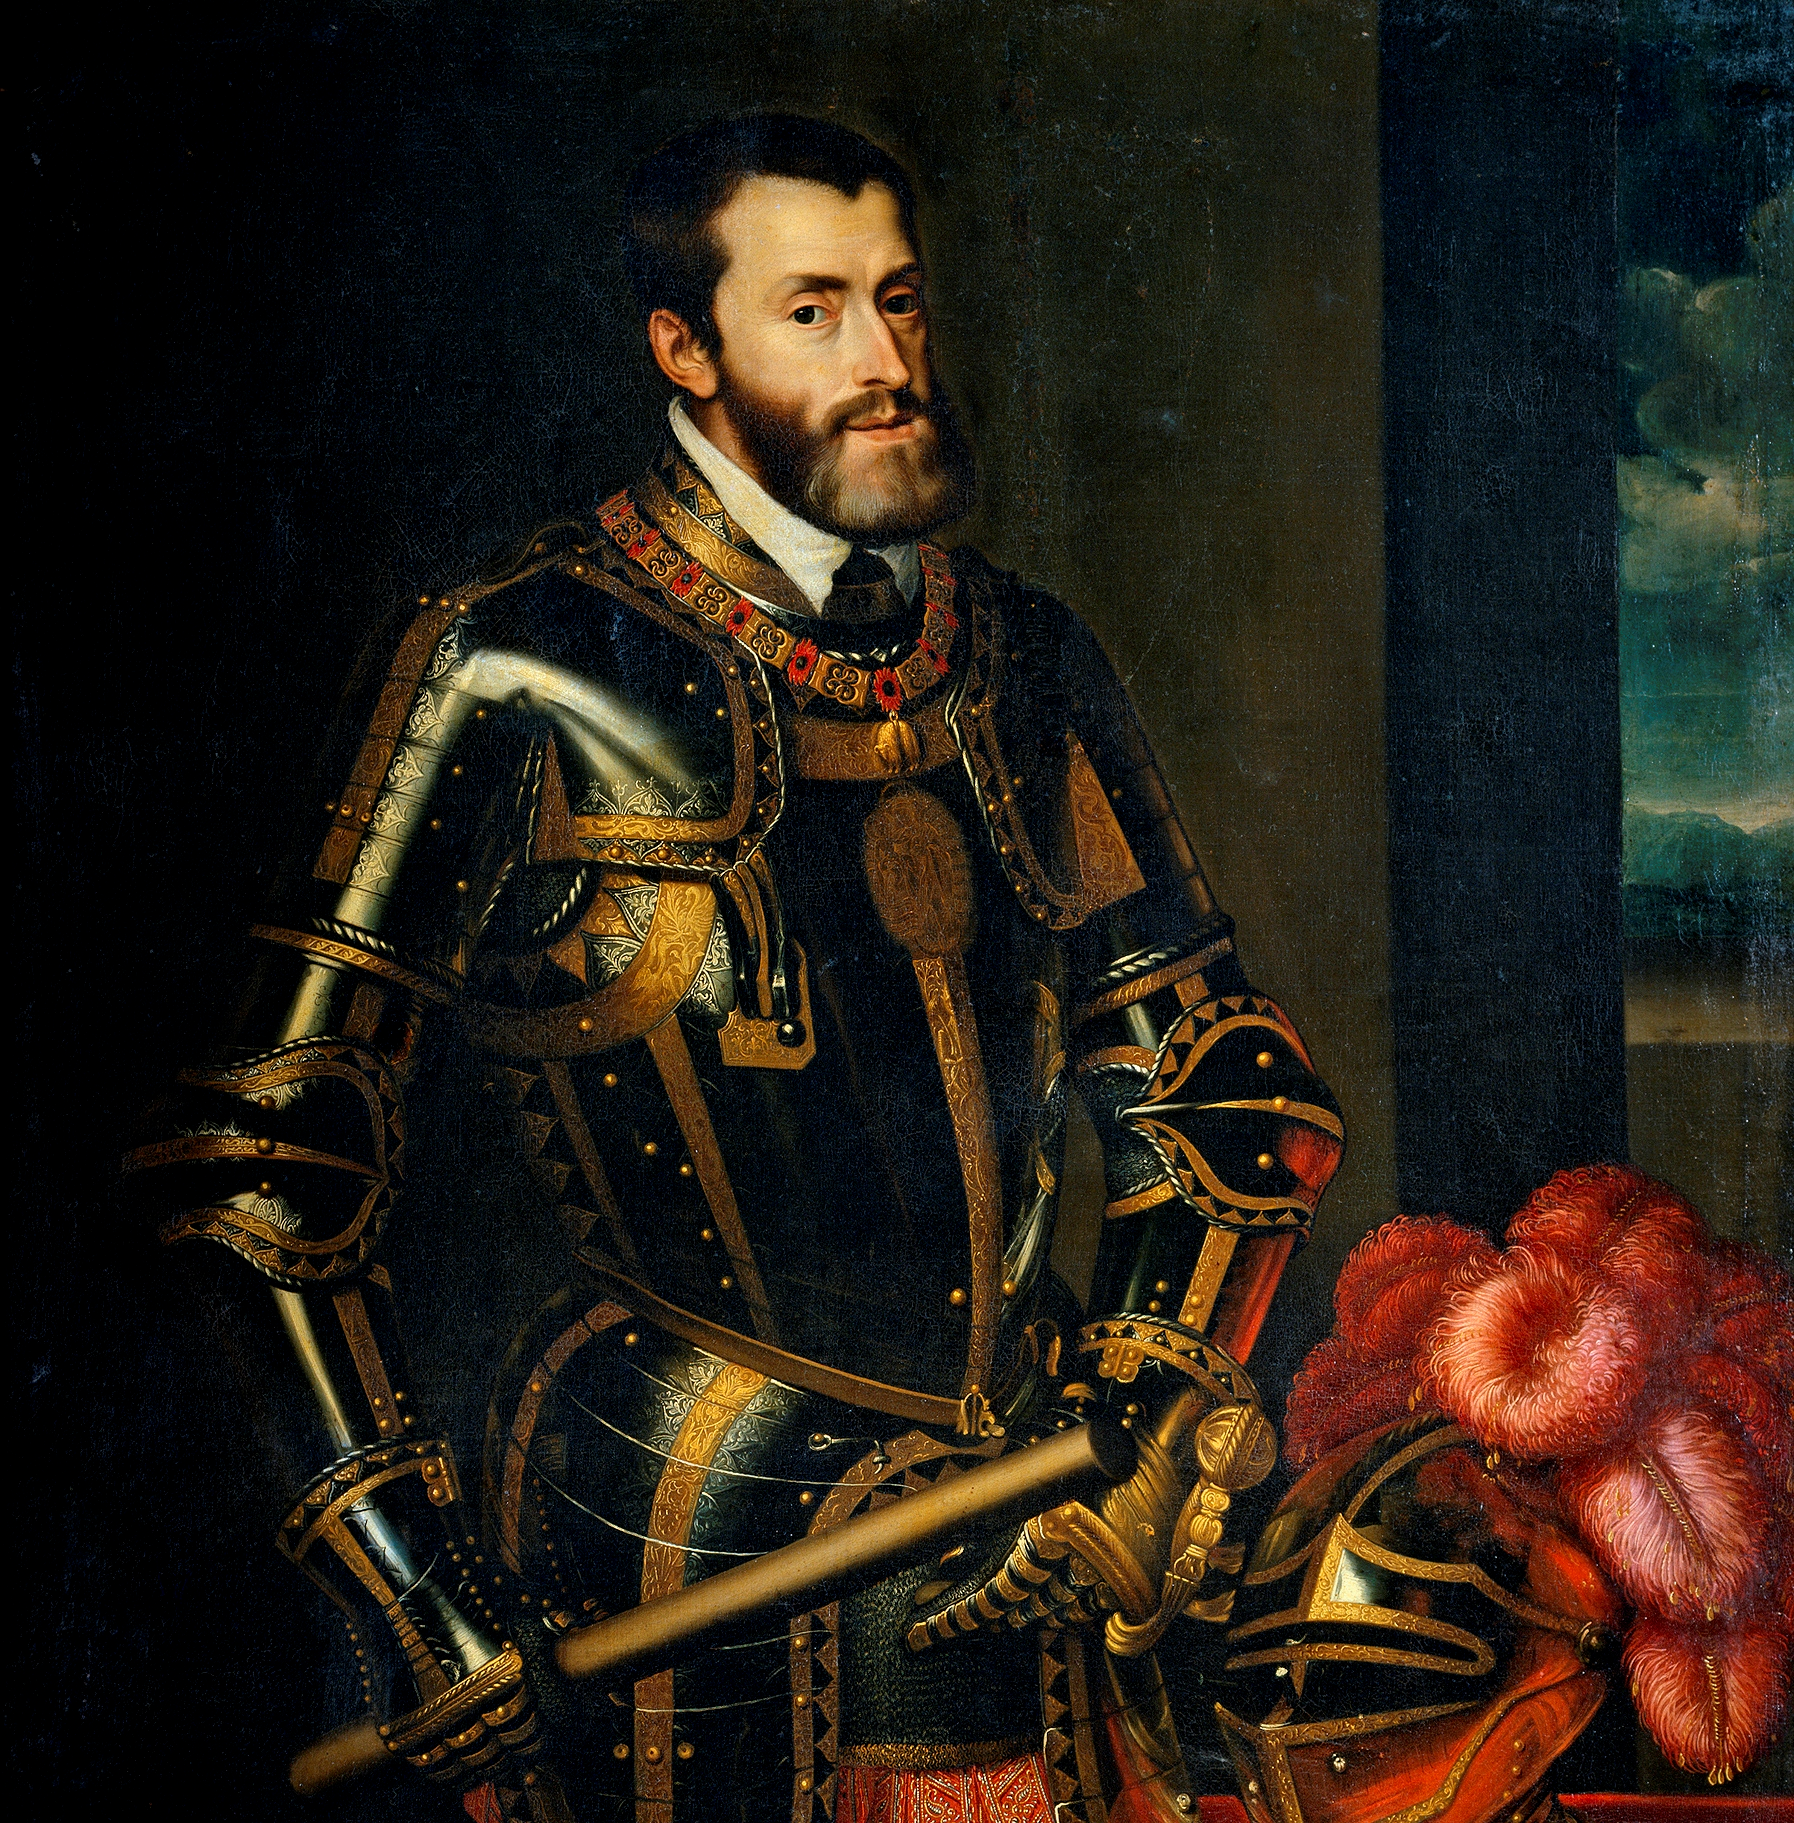 http://upload.wikimedia.org/wikipedia/commons/6/61/Emperor_charles_v.png